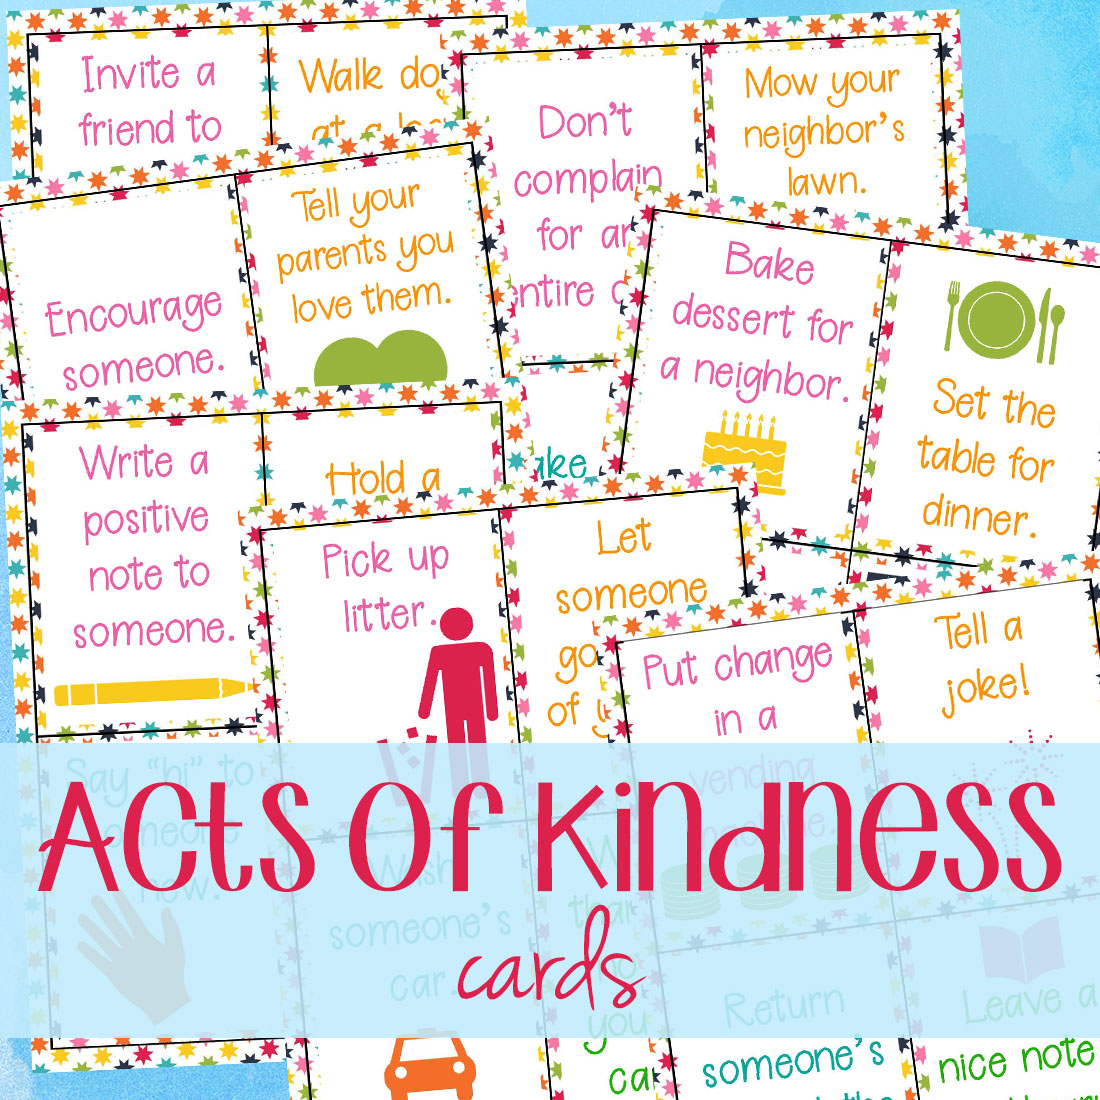 January Random Acts of Kindness Ideas Calendar, Random Acts of Kindness Calendar for January, Acts of Kindness, This January Random Acts of Kindness Calendar is a perfect way to start the new year. promote kindness with these Random acts of kindness examples, This Monthly acts of kindness calendar is full of fun ideas